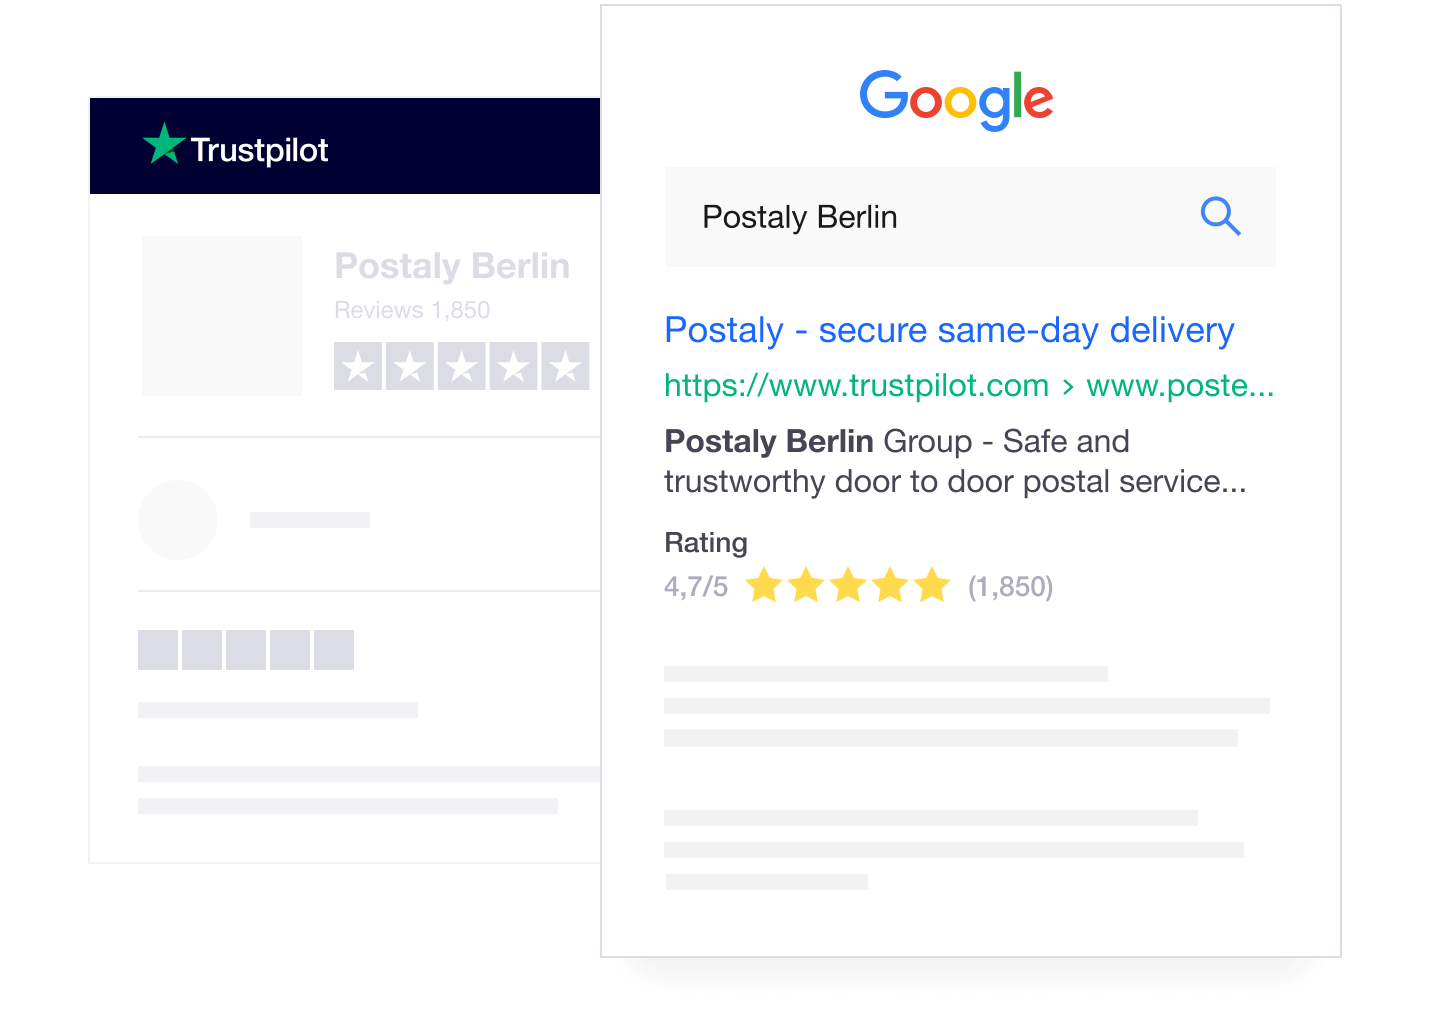 Trustpilot Location Reviews on Google Search (Local SEO)